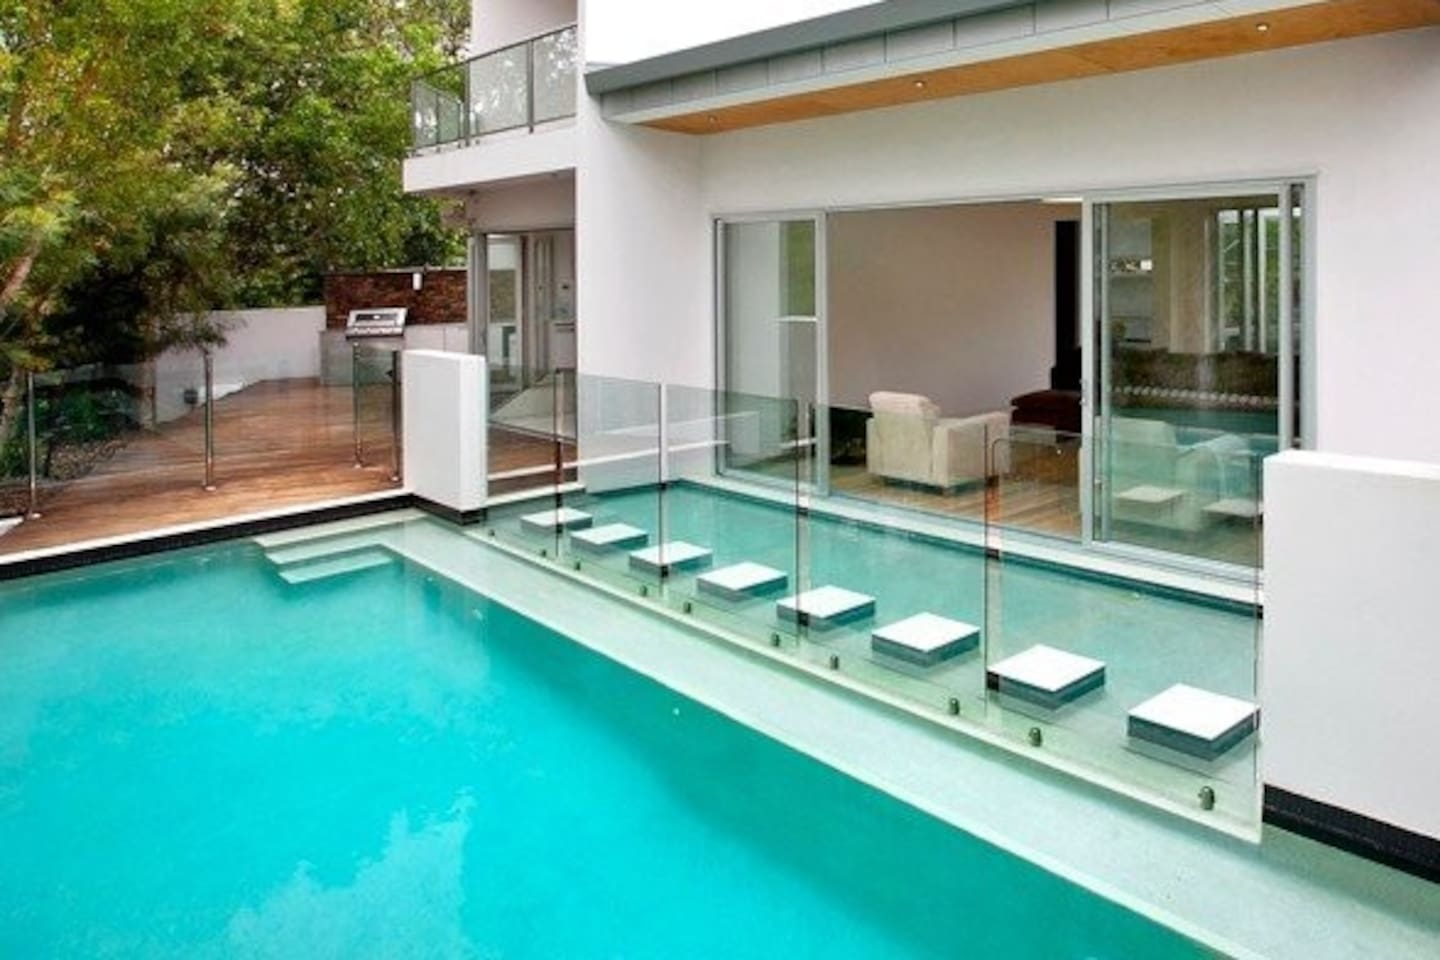 Centrally Located, Private, Architecturally Designed House with North-Facing, Wet-Edge Pool